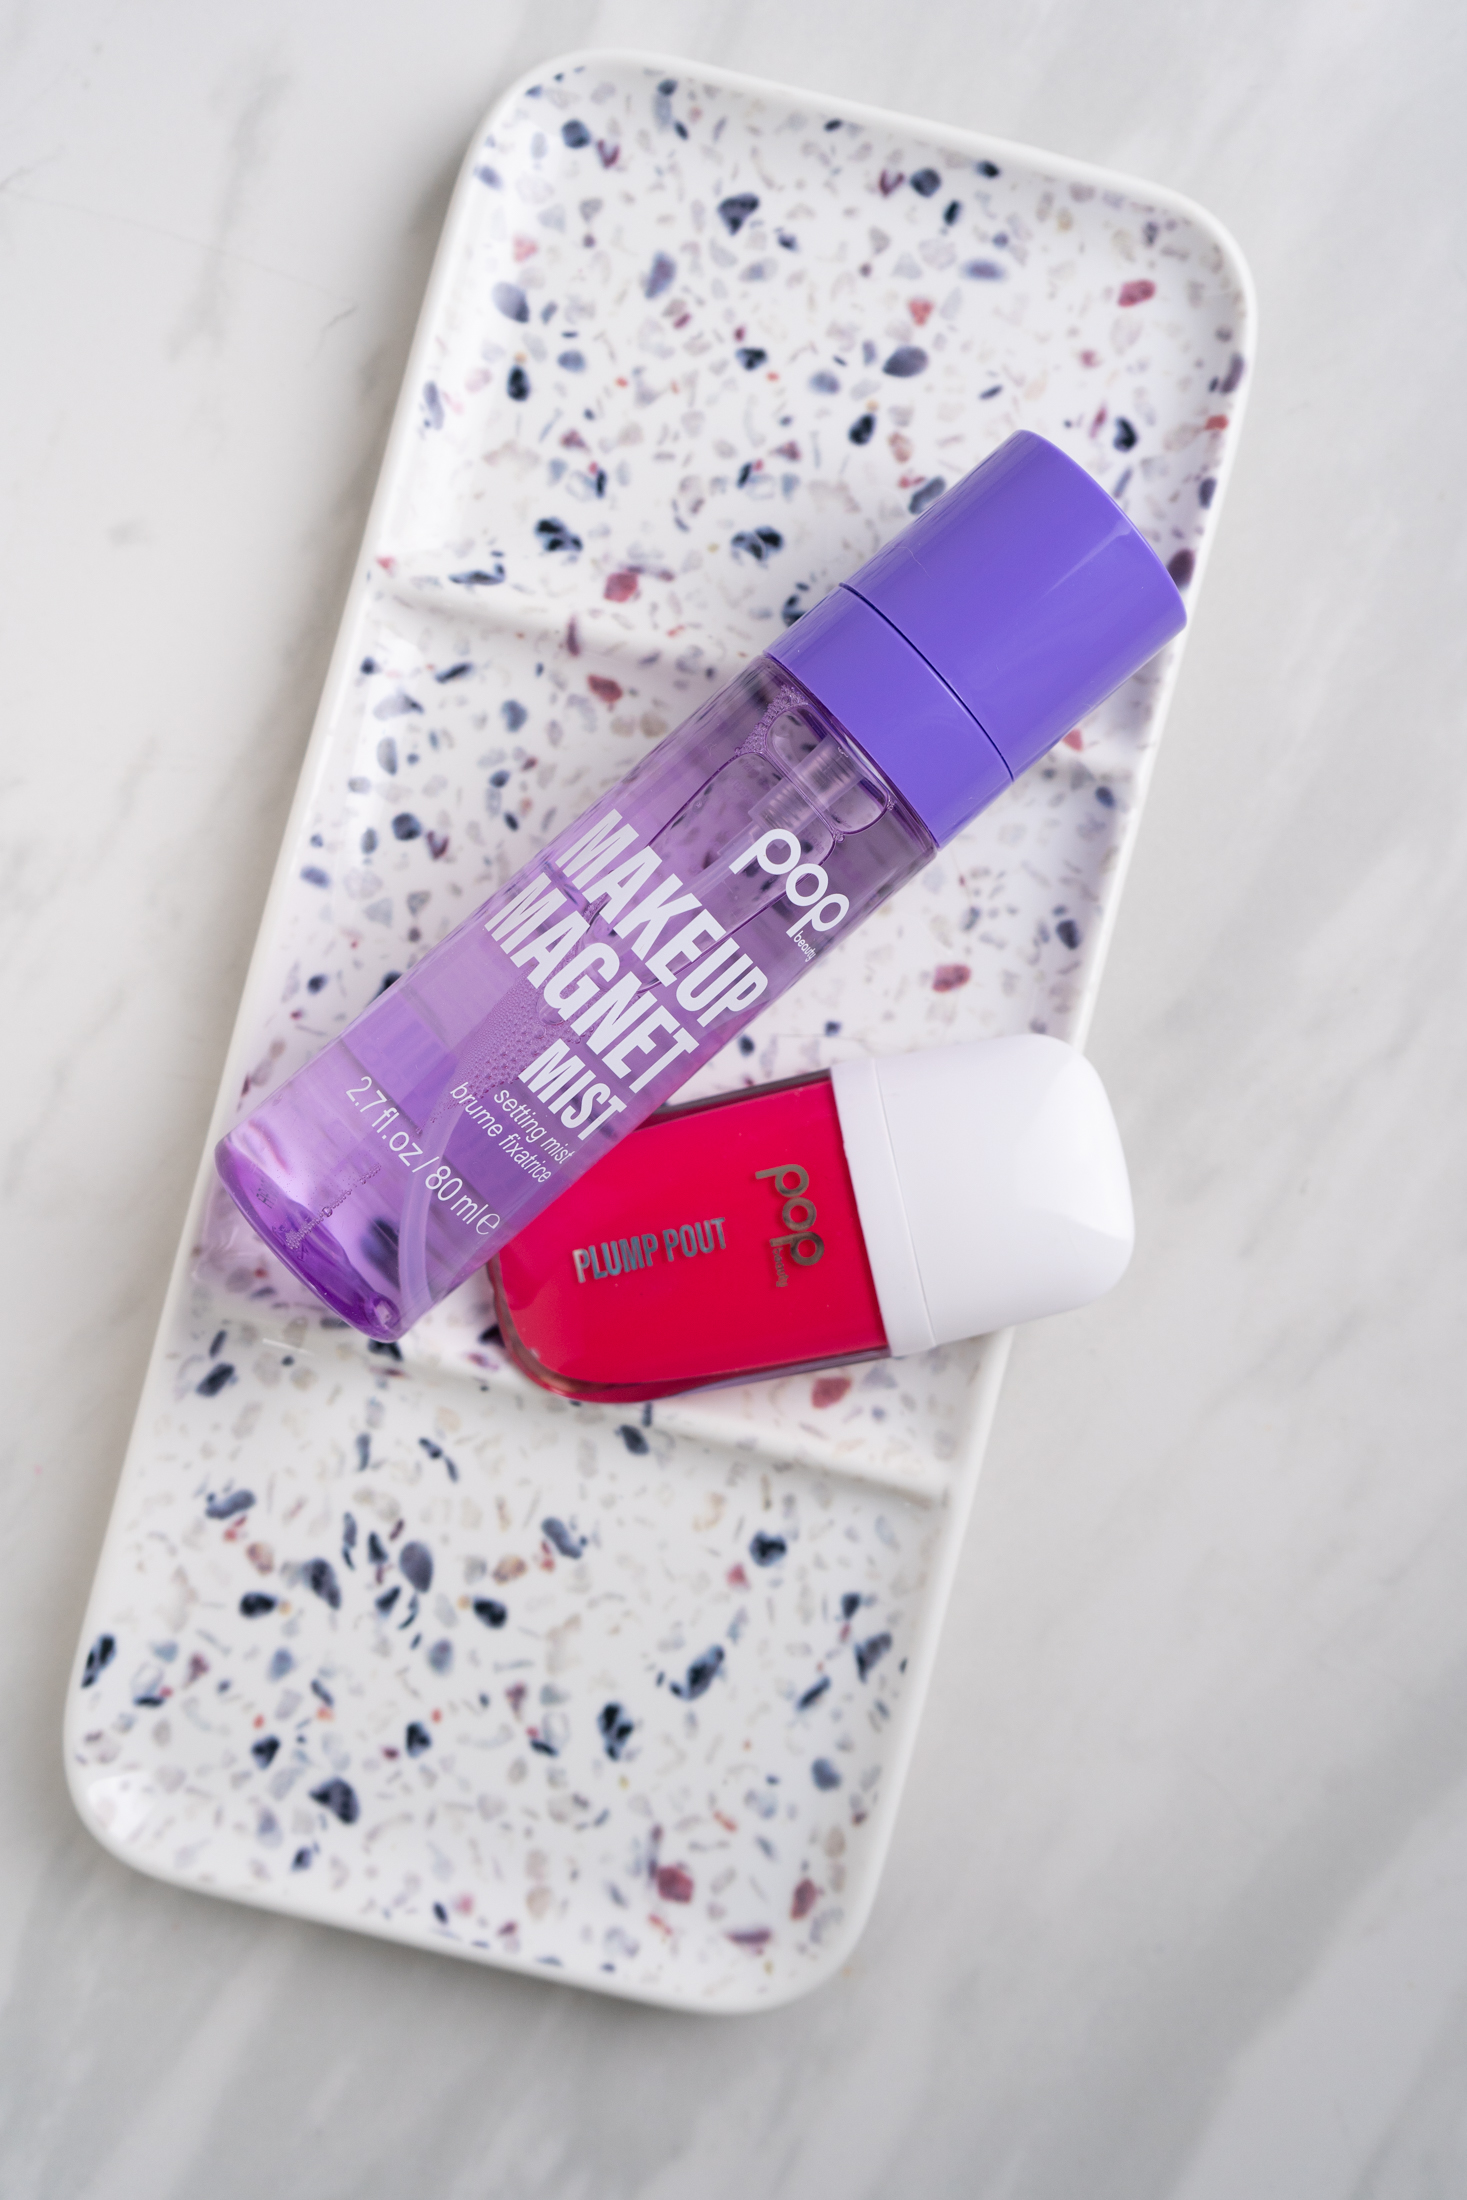 pop beauty makeup magnet mist setting spray and plump pout gloss